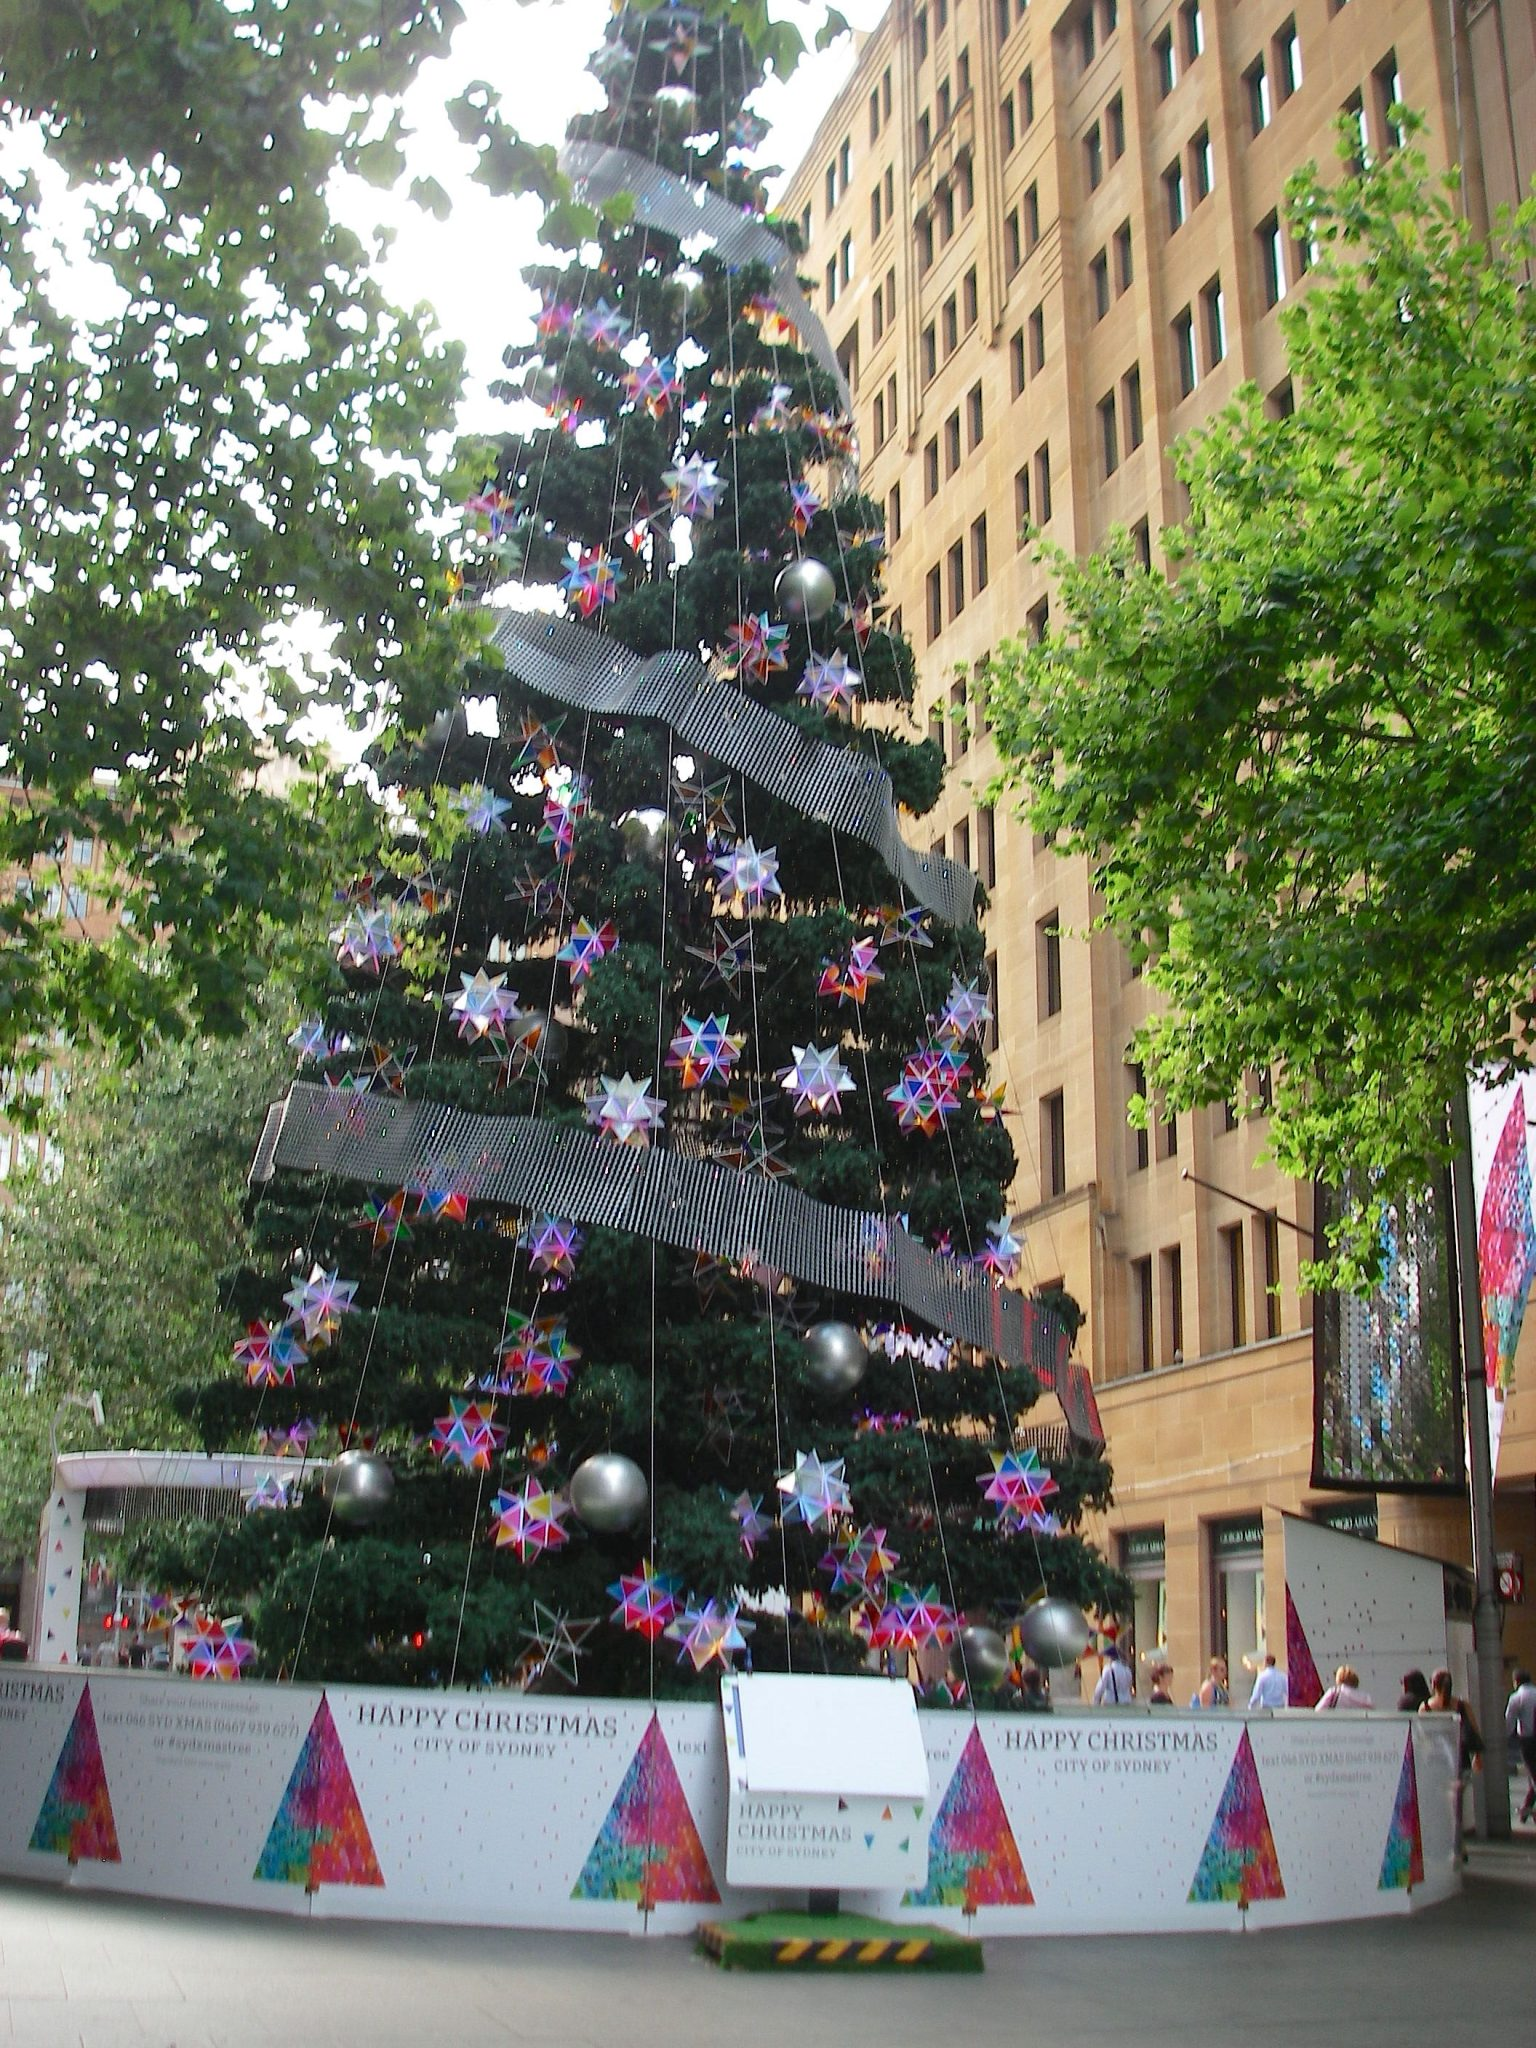 43.1. One of the many Christmas trees the City of Sydney displayed to bring joy to locals and visitors